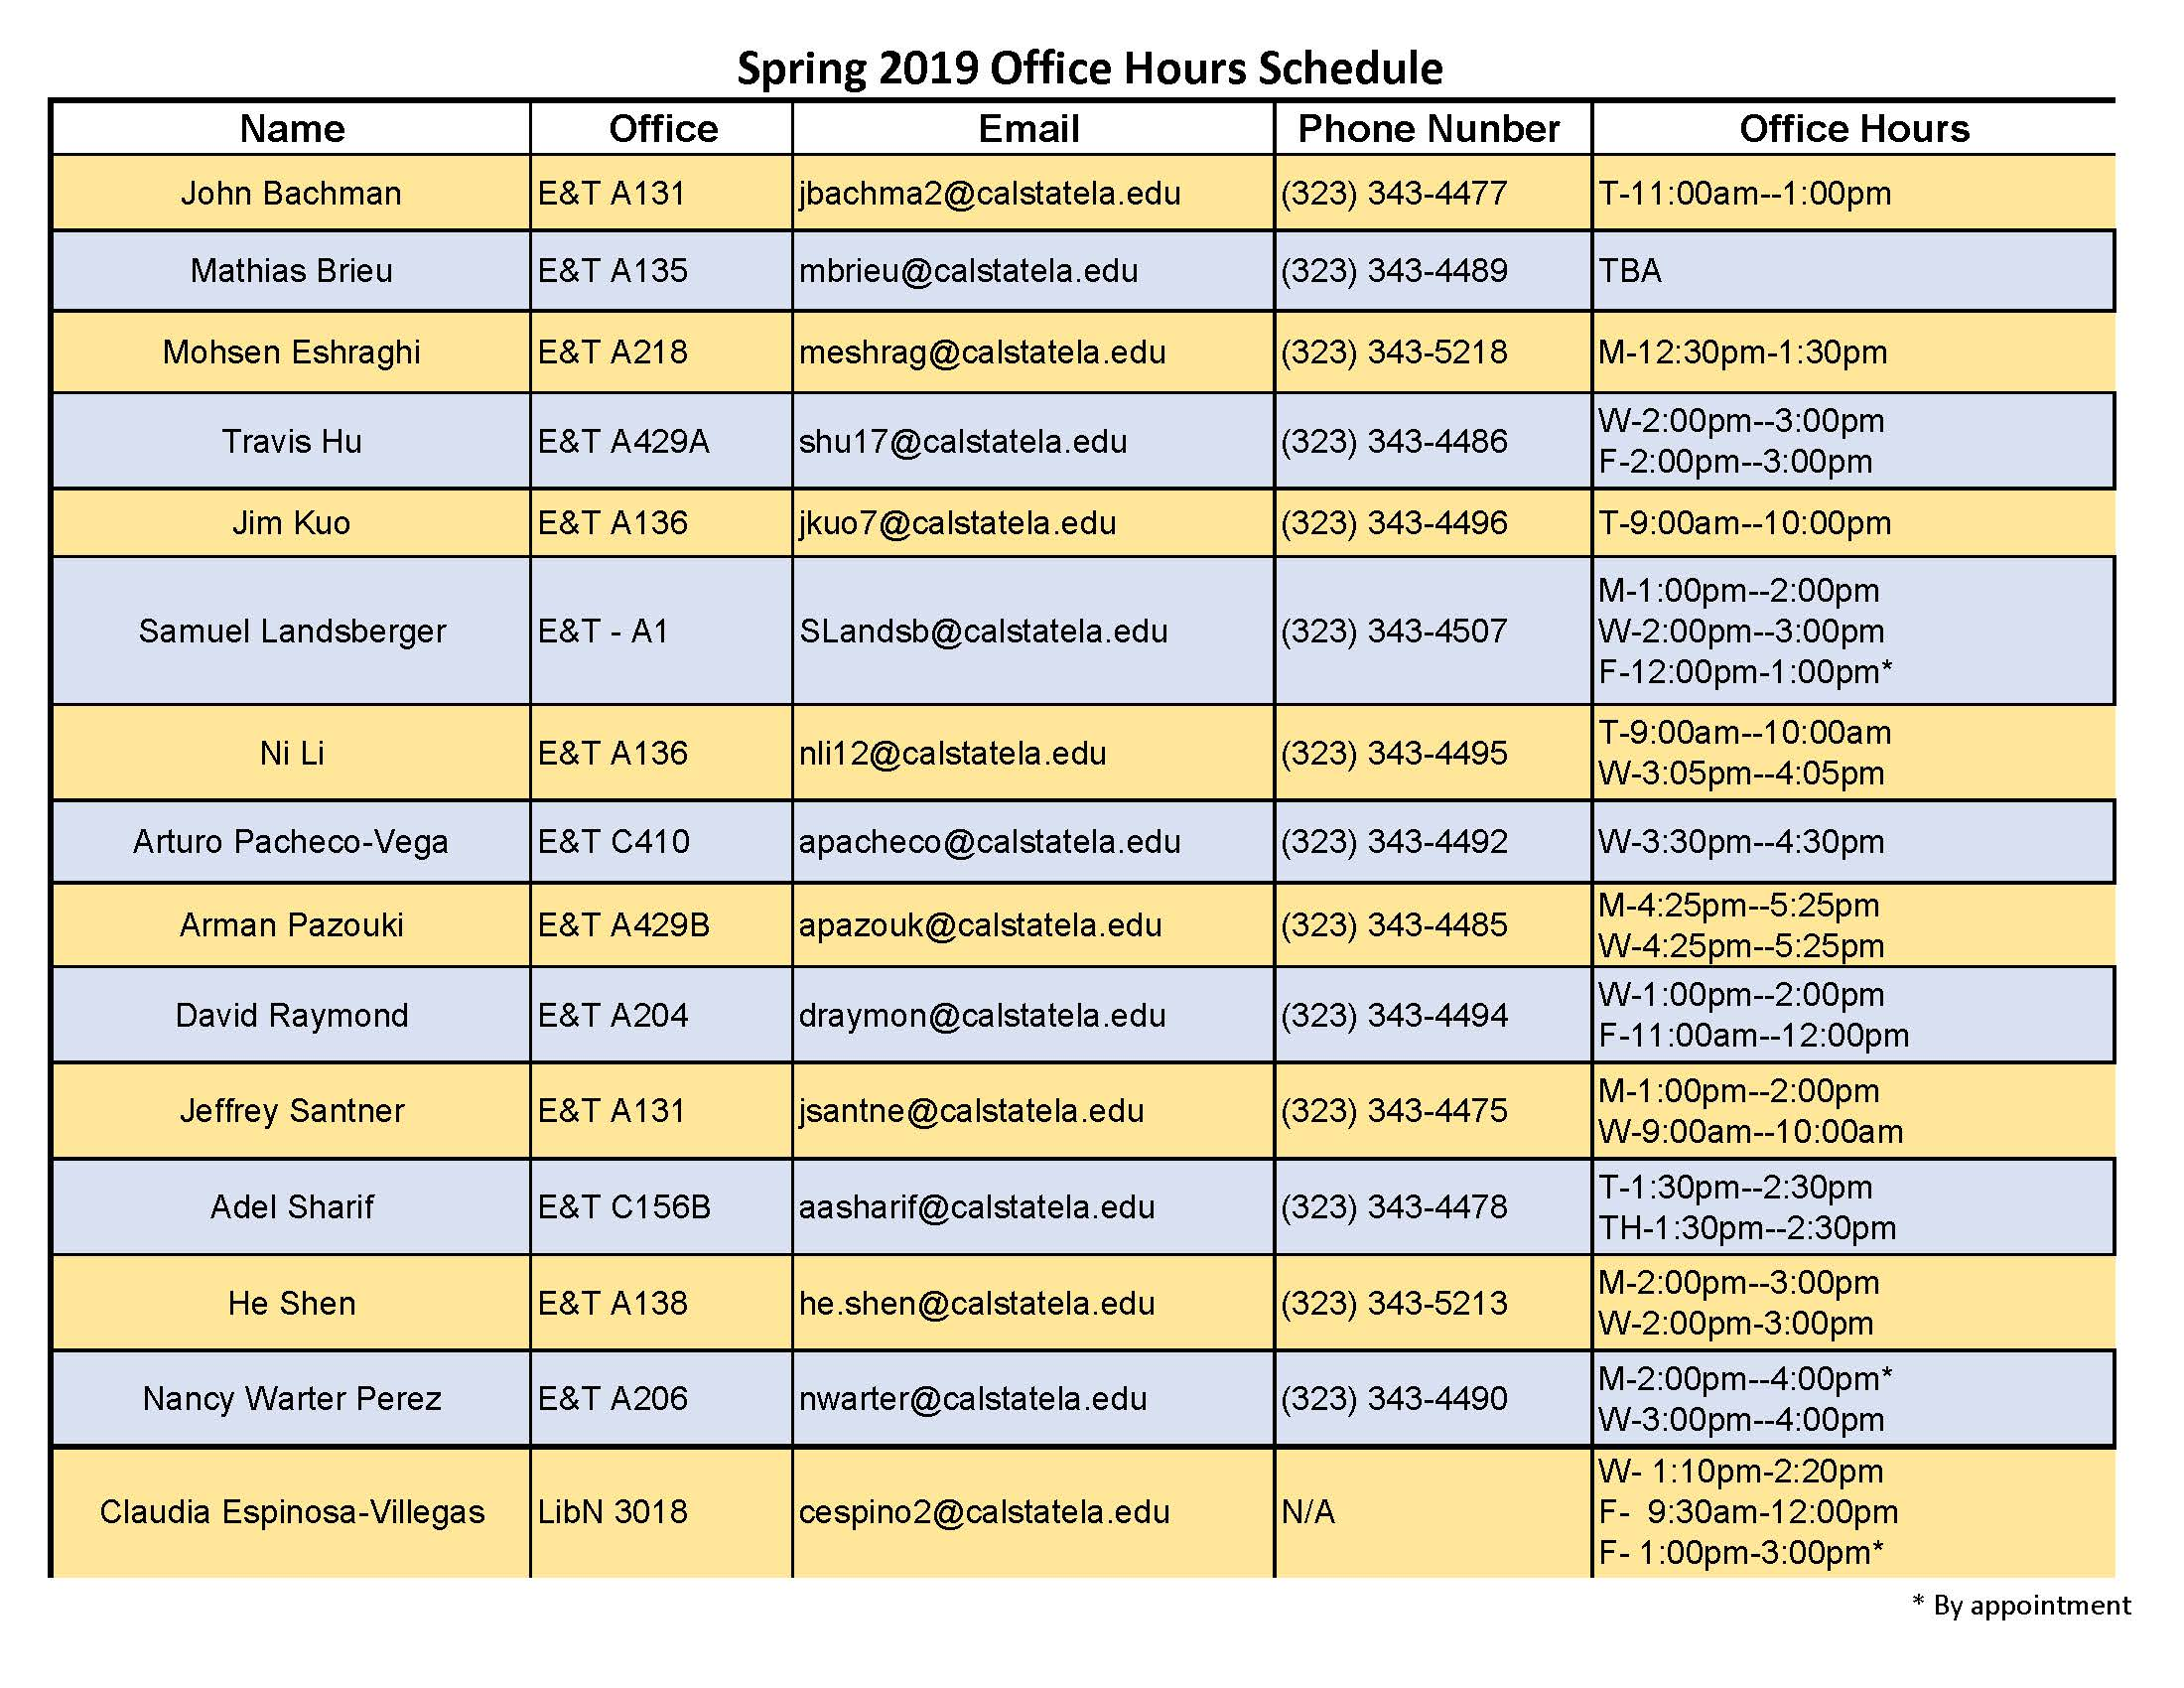 Spring 2019 Advising/Office Hours